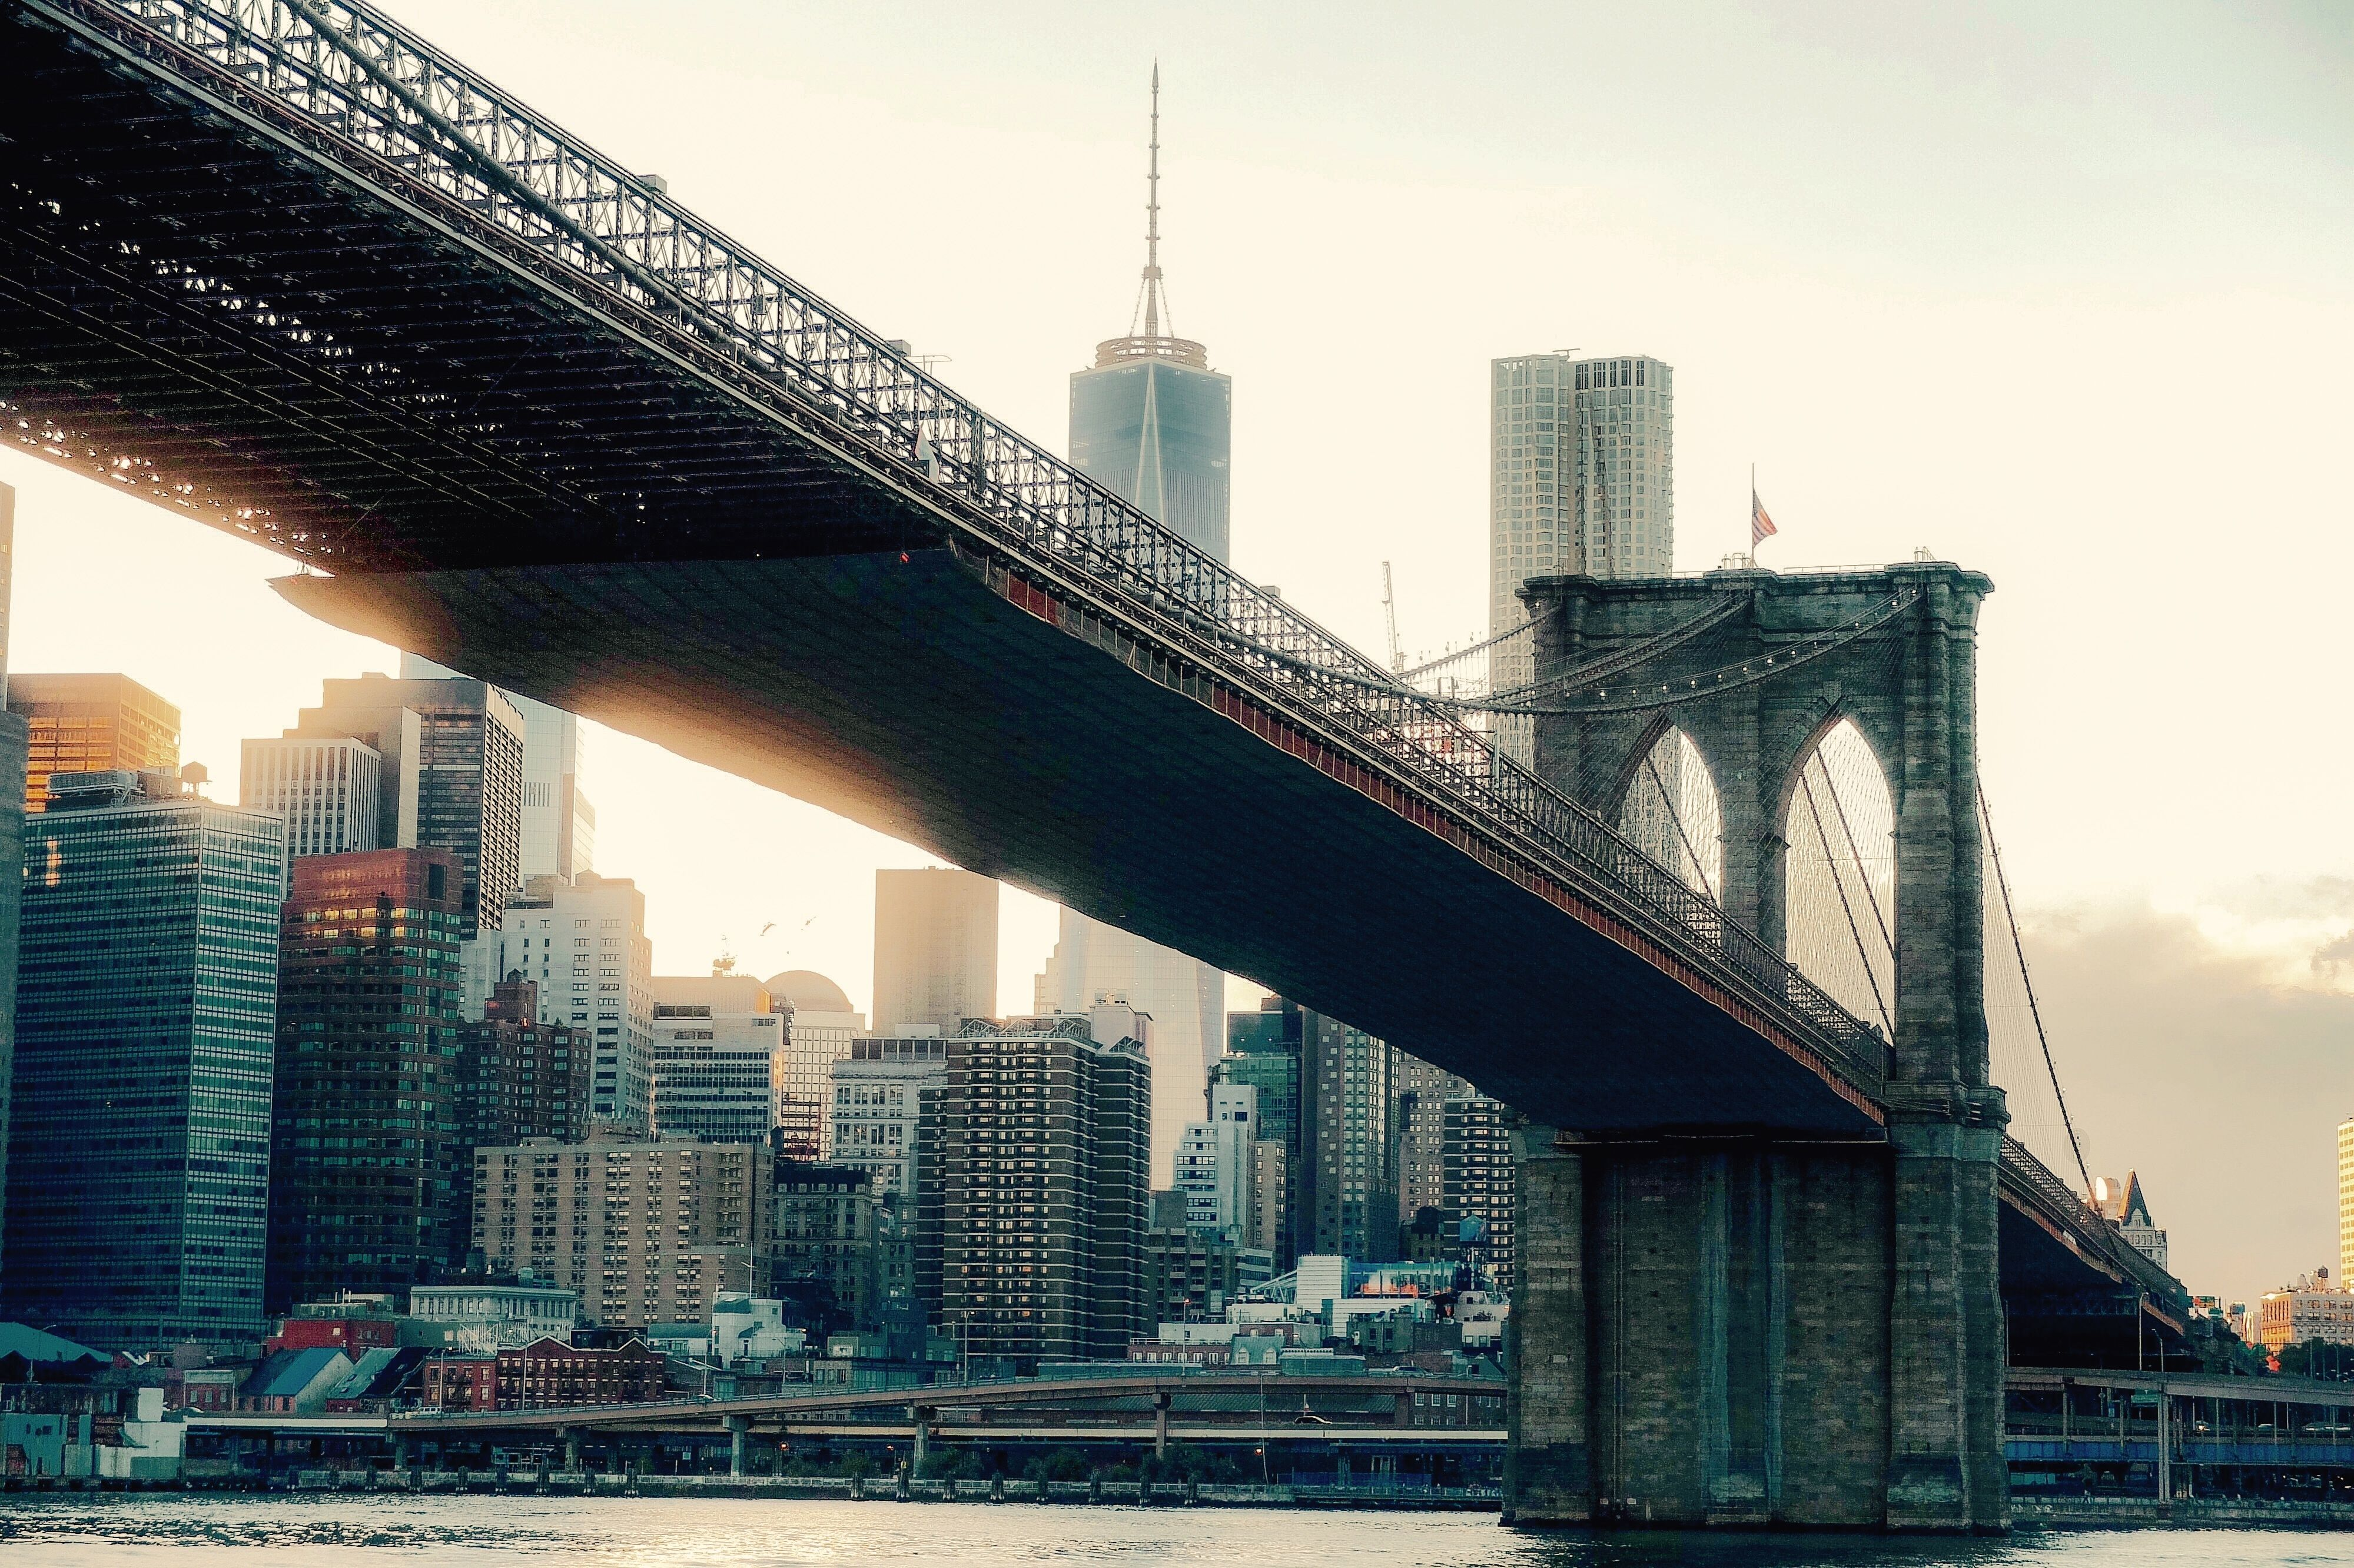 Getting to the brooklyn bridge in nyc for Destination spas near nyc